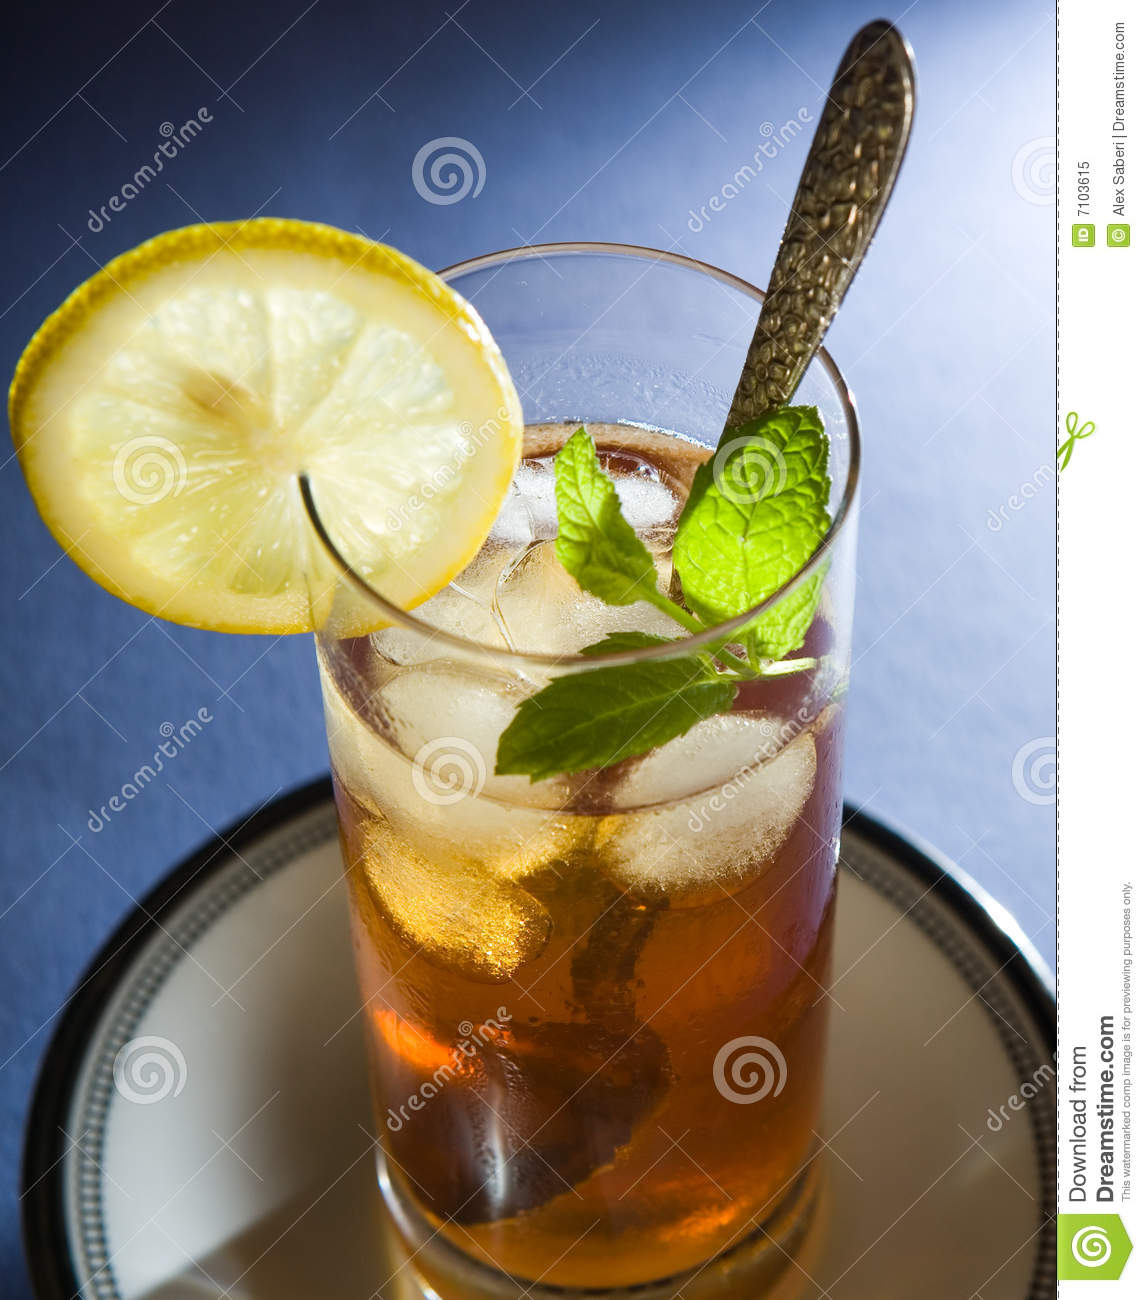 Iced Tea With Mint And Lemon Stock Image - Image: 7103615